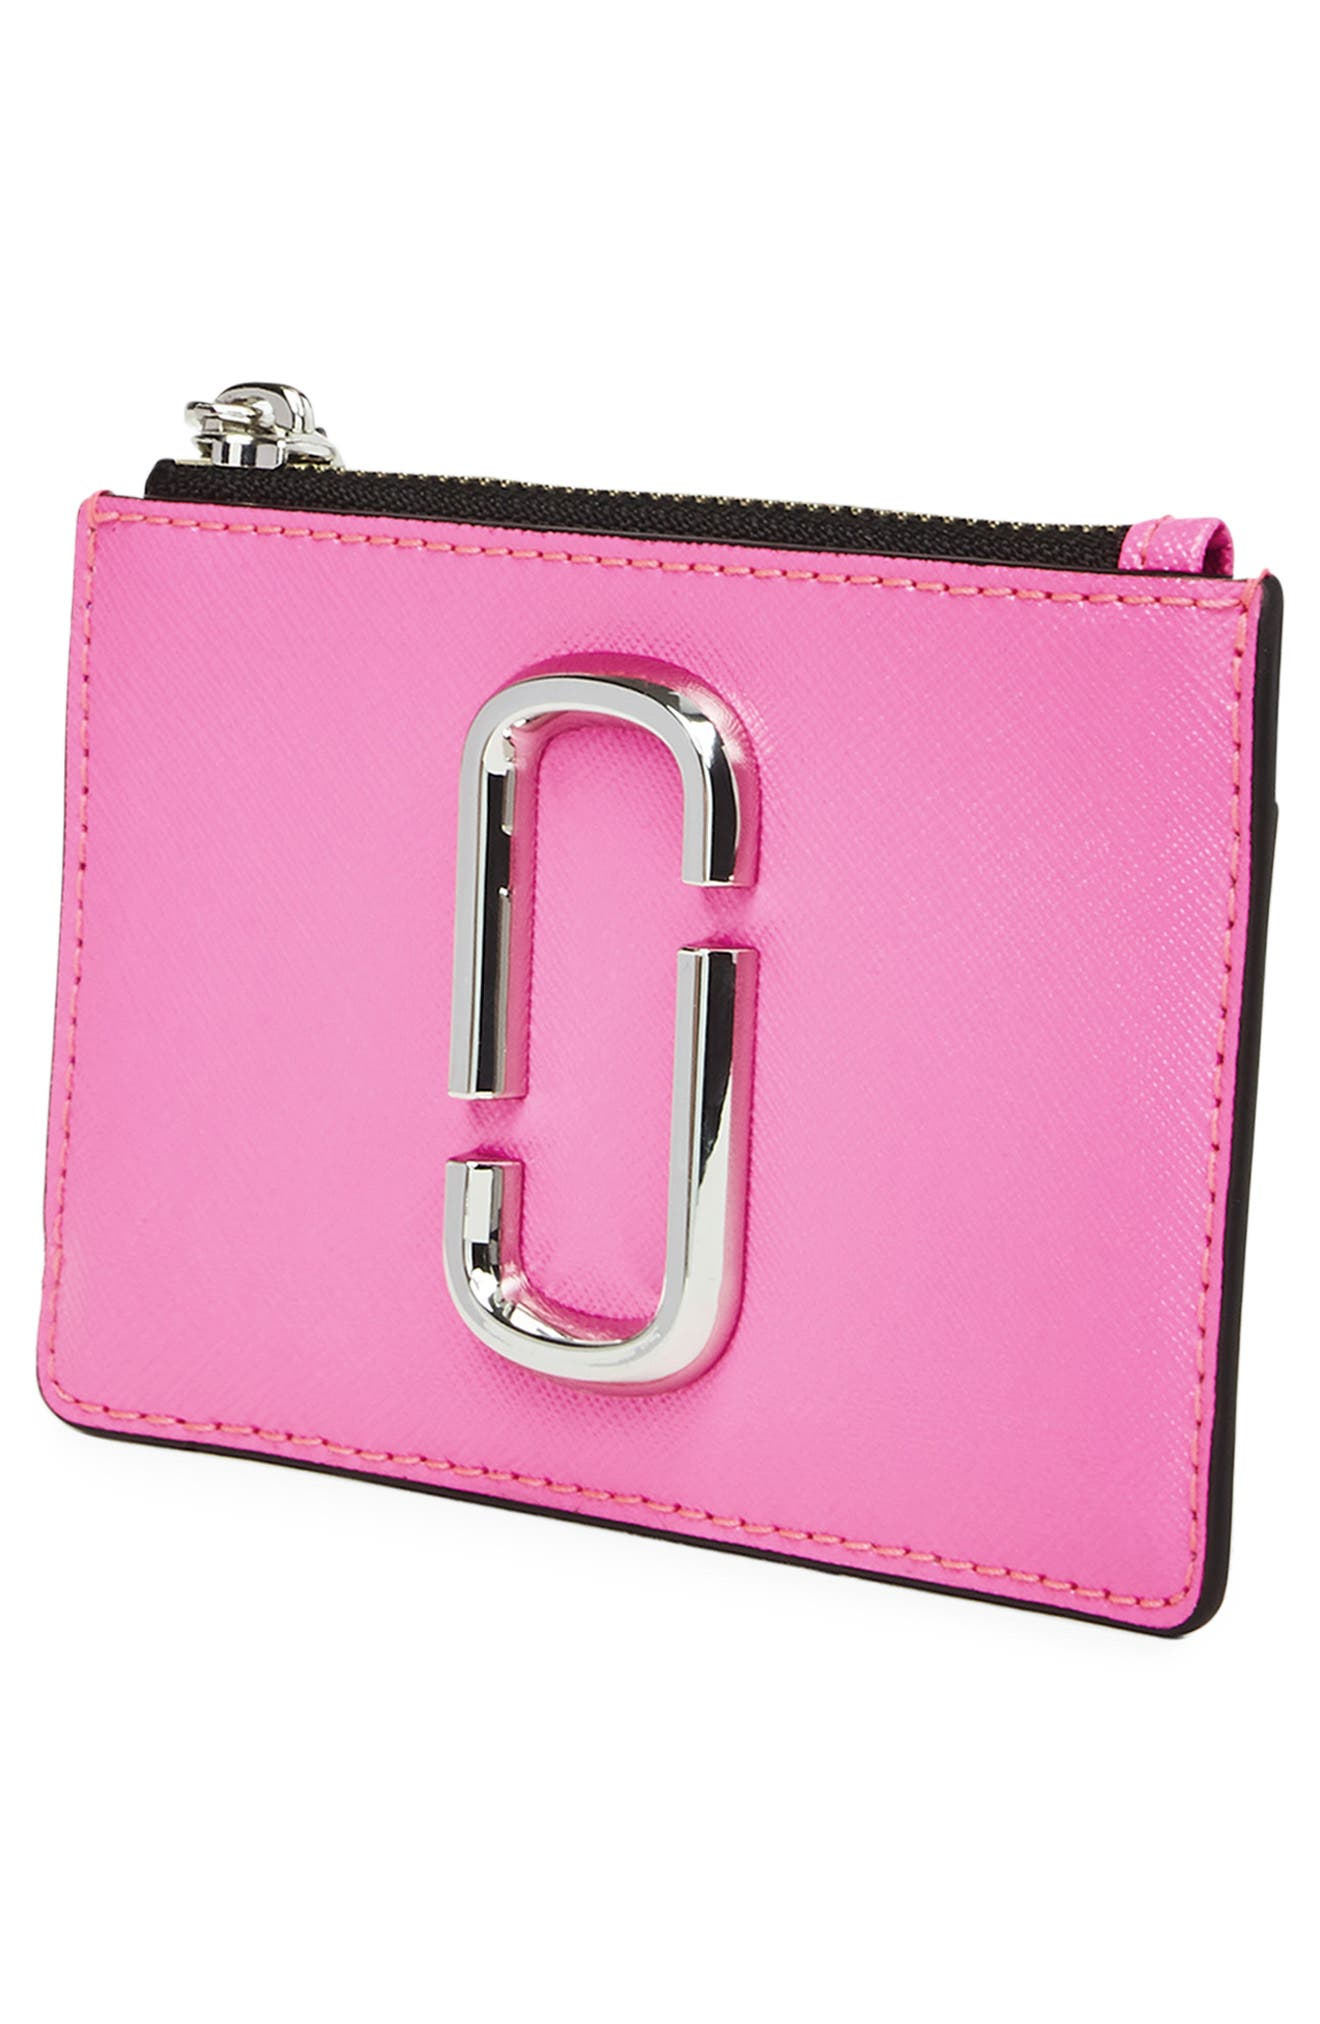 Snapshot Small Leather Wallet,                             Alternate thumbnail 3, color,                             BRIGHT PINK MULTI